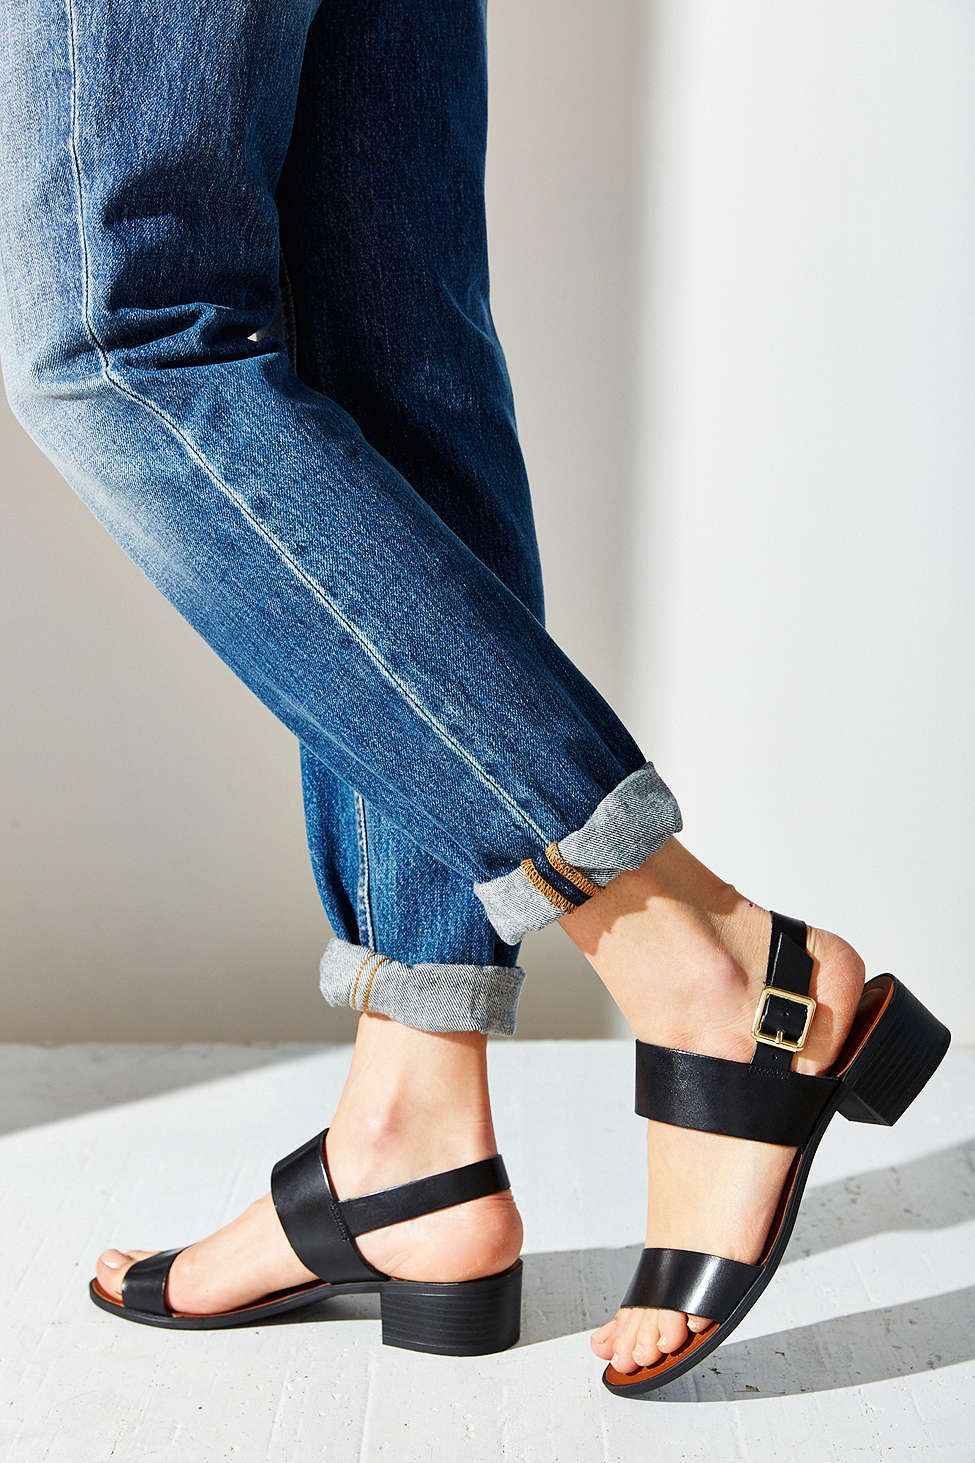 Seychelles Cassiopeia Slingback Sandal - Urban Outfitters